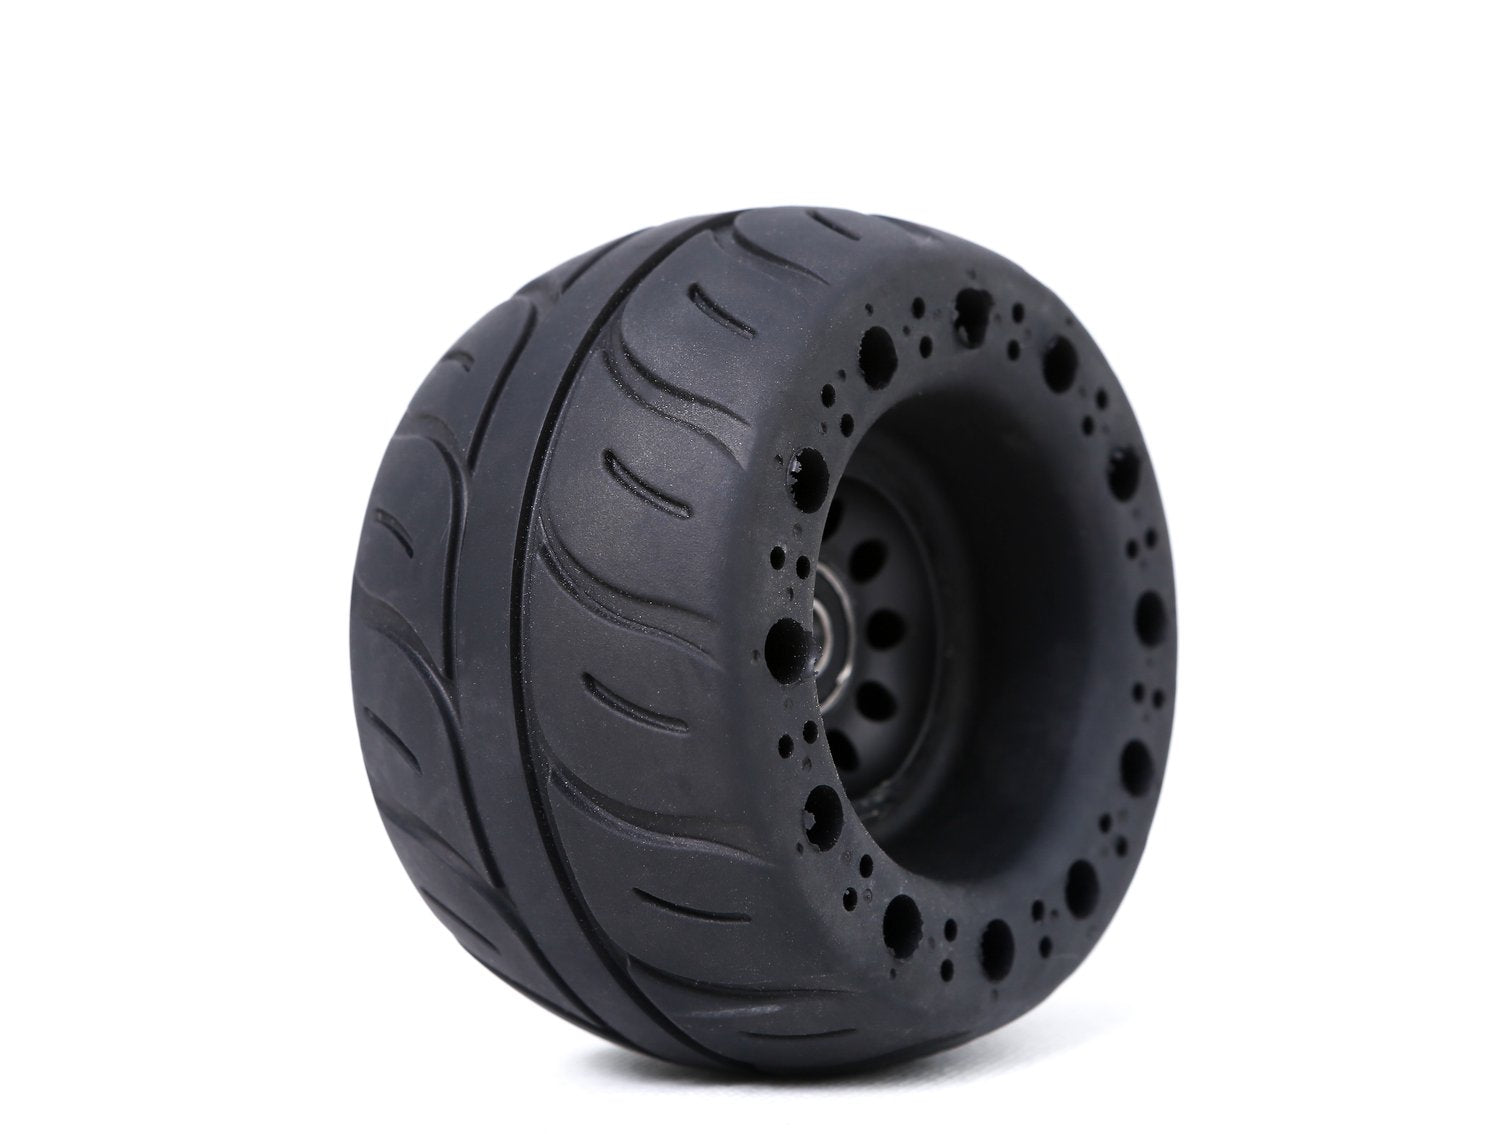 115mm Rubber Electric Skateboard Wheels by ONSRA - ONSRA California